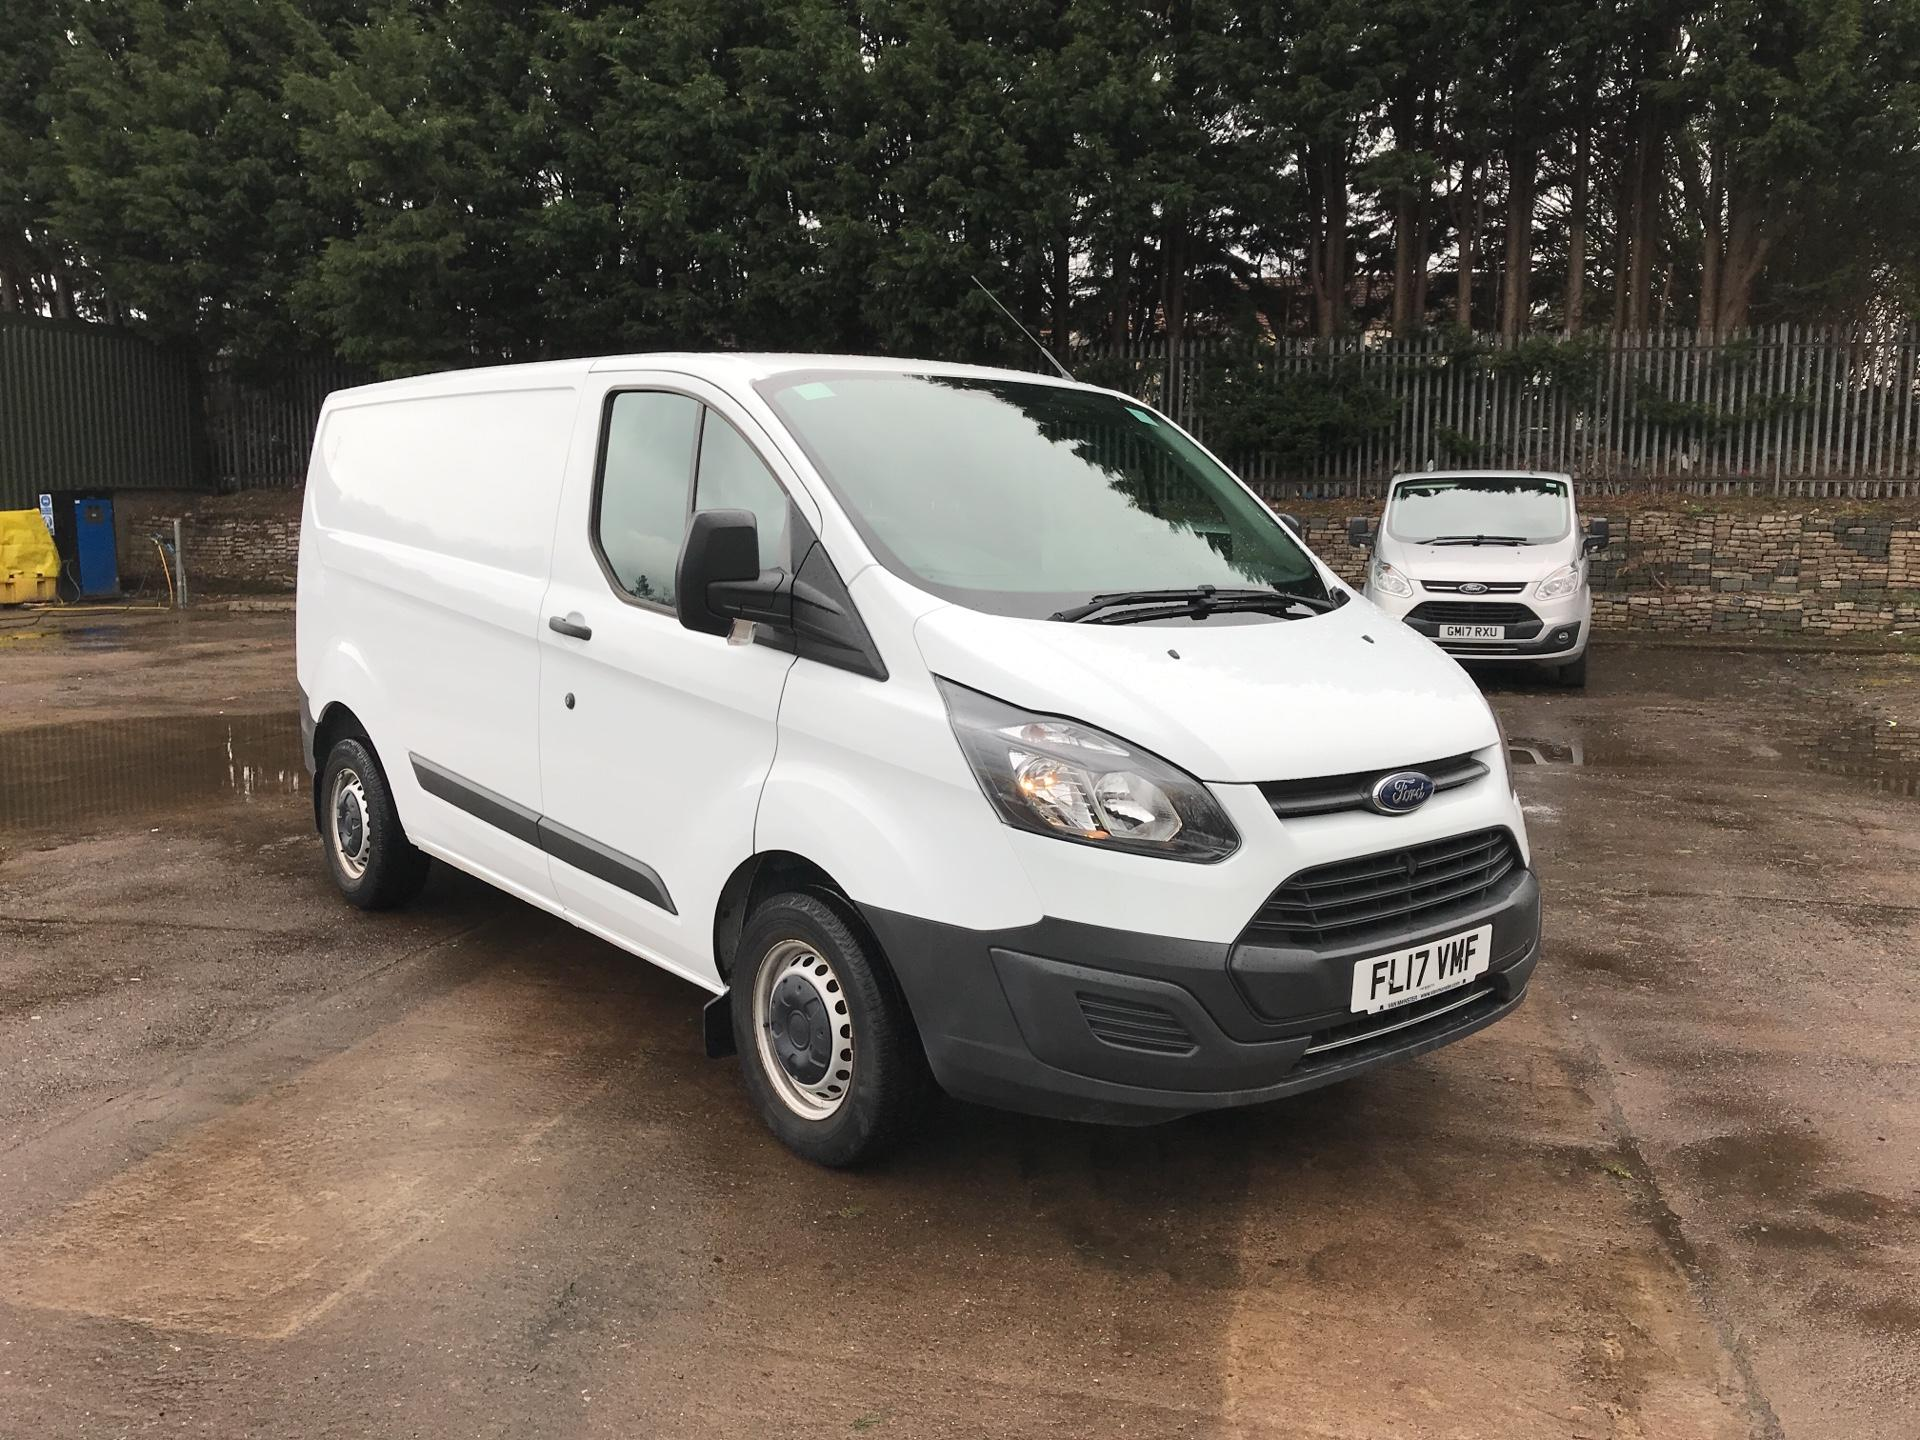 2017 Ford Transit Custom 290 L1 DIESEL FWD 2.0 TDCI 105PS LOW ROOF VAN EURO 6 (FL17VMF)